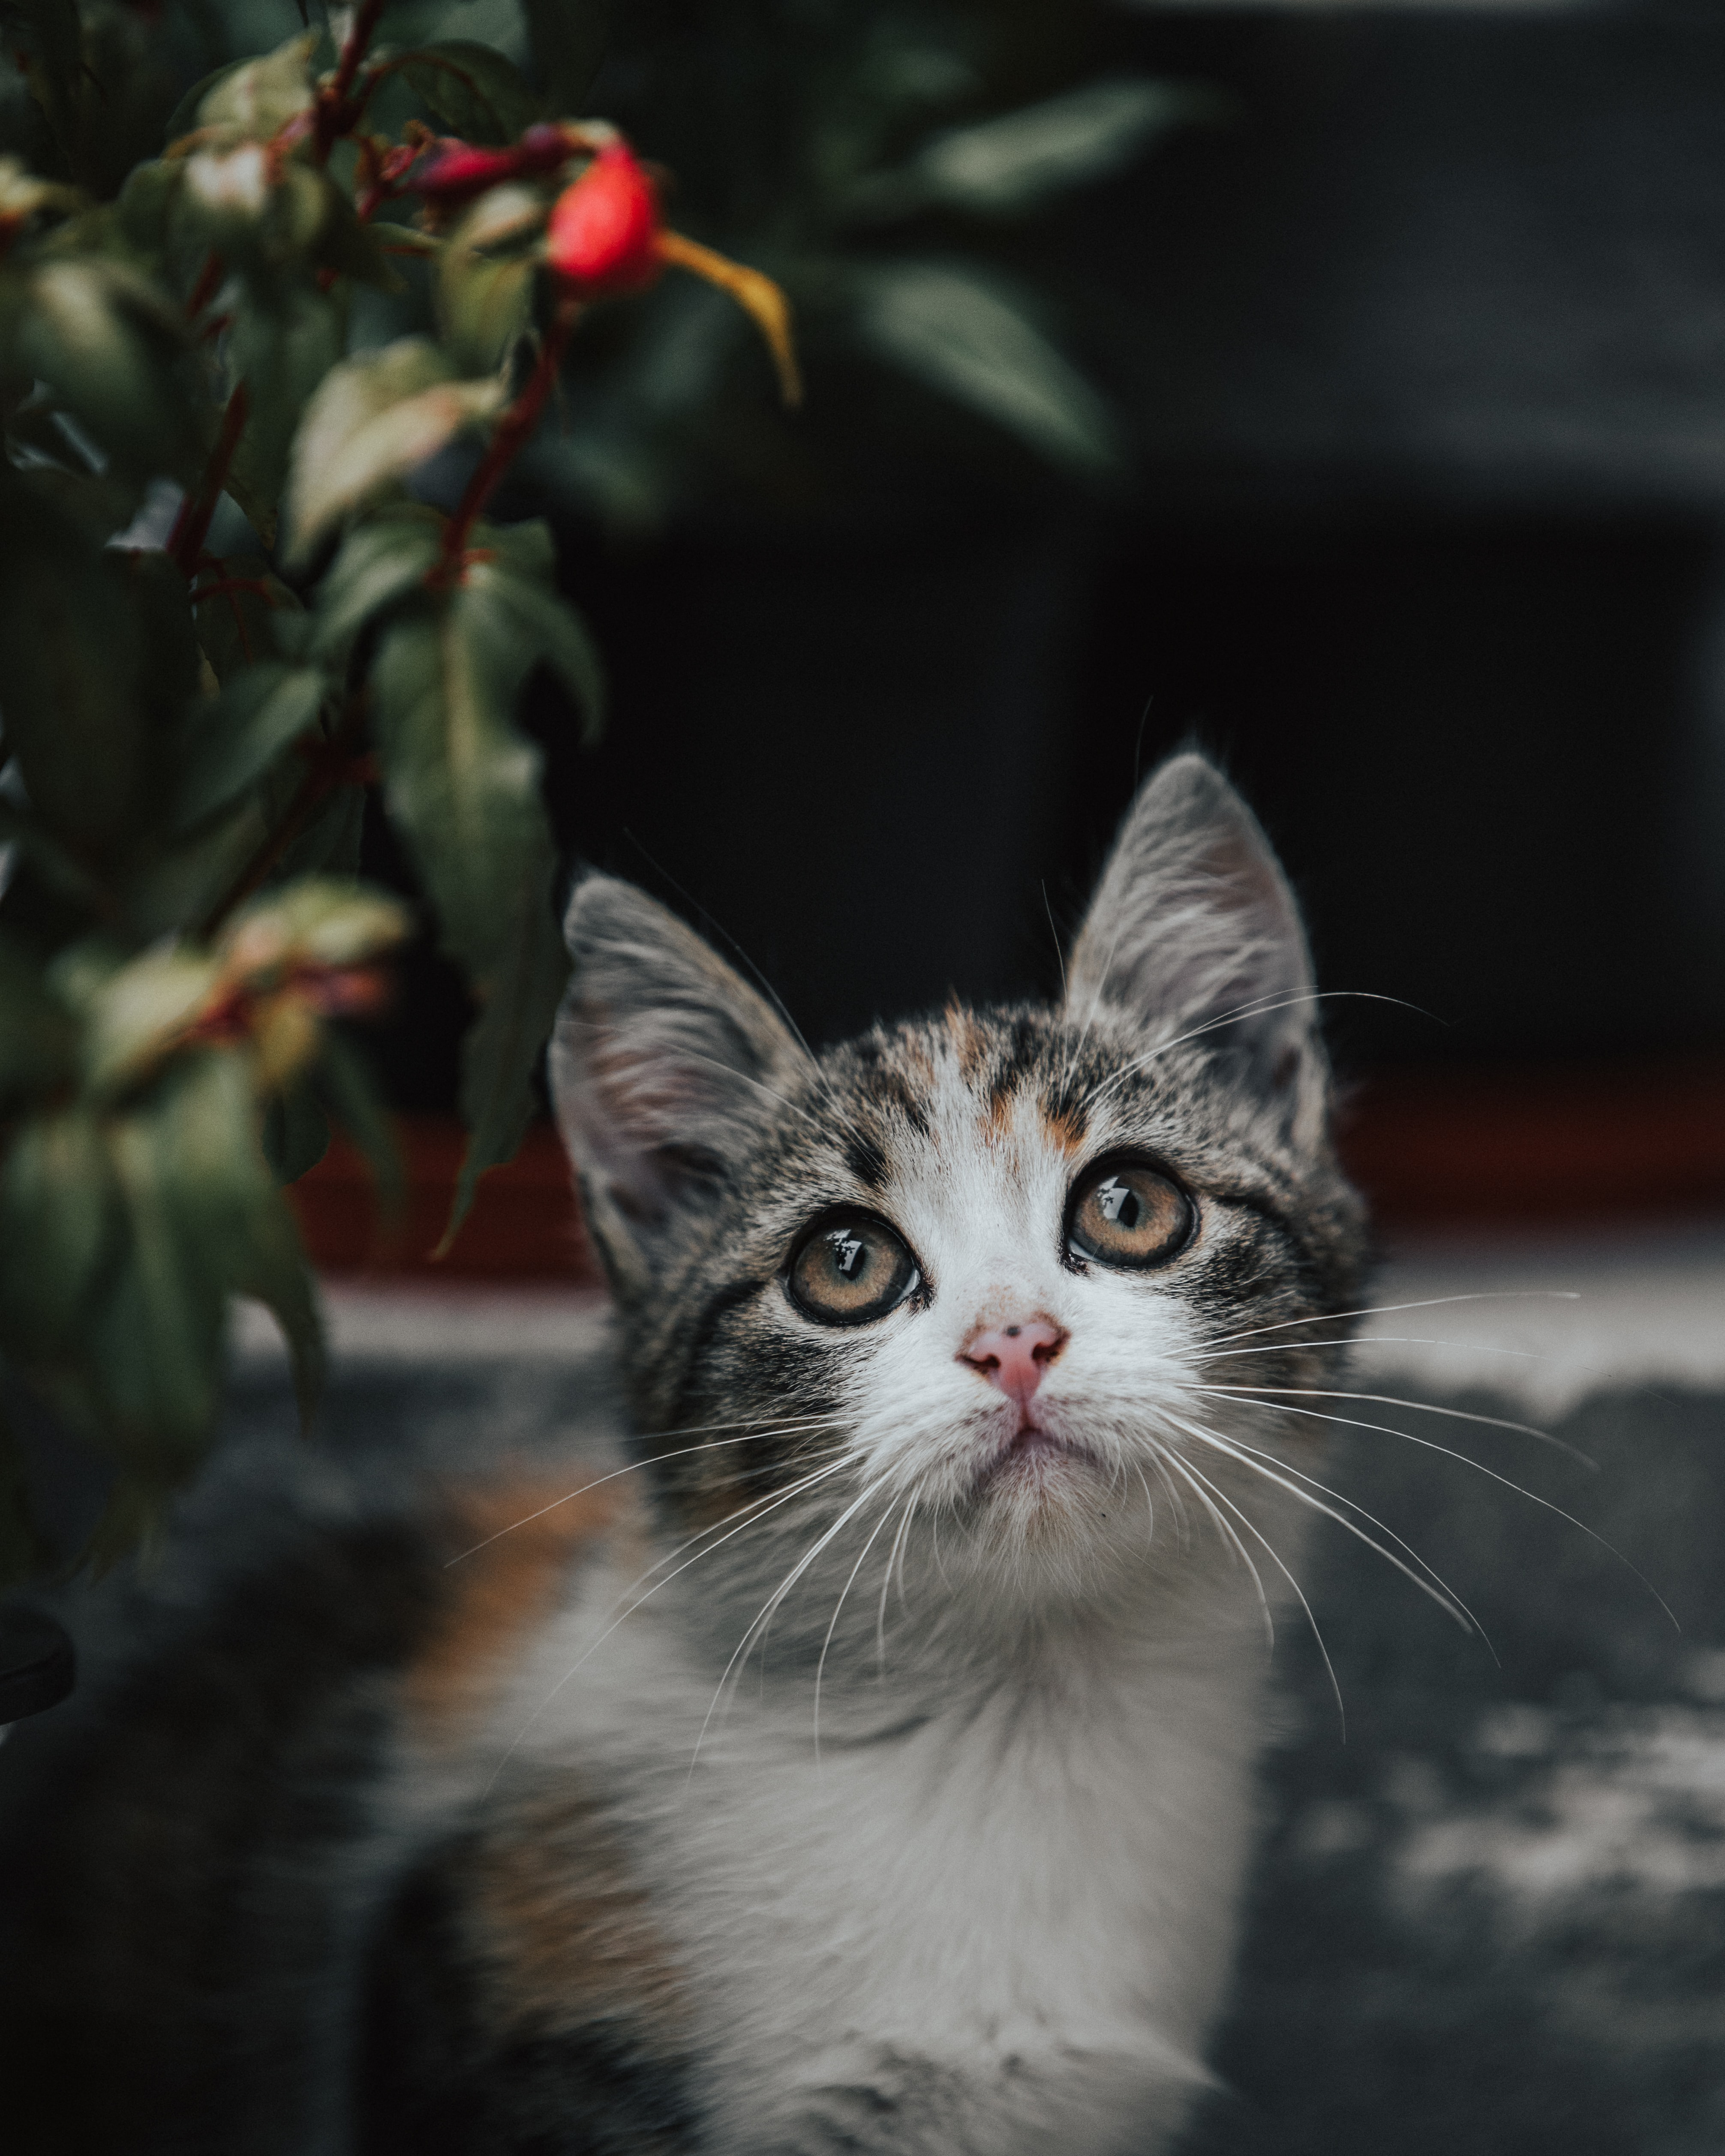 154533 download wallpaper Animals, Kitty, Kitten, Cat, Sight, Opinion, Nice, Sweetheart screensavers and pictures for free